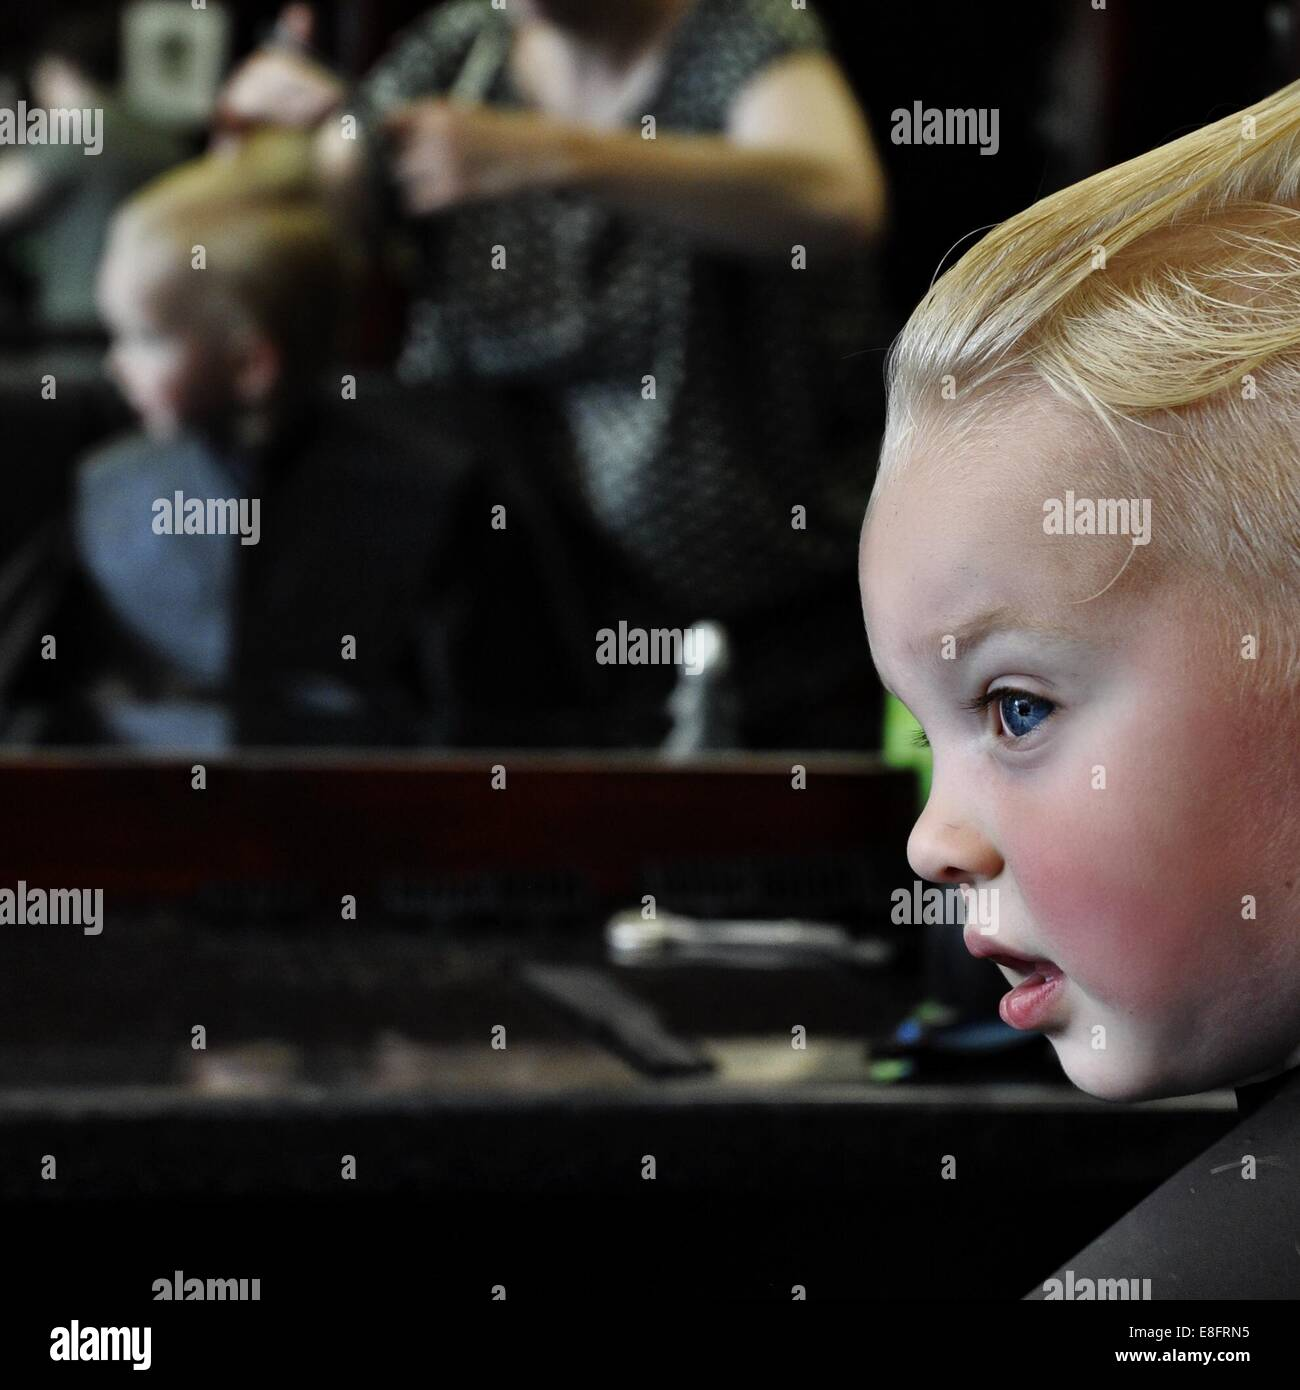 Boy having hair cut at hairdressers - Stock Image